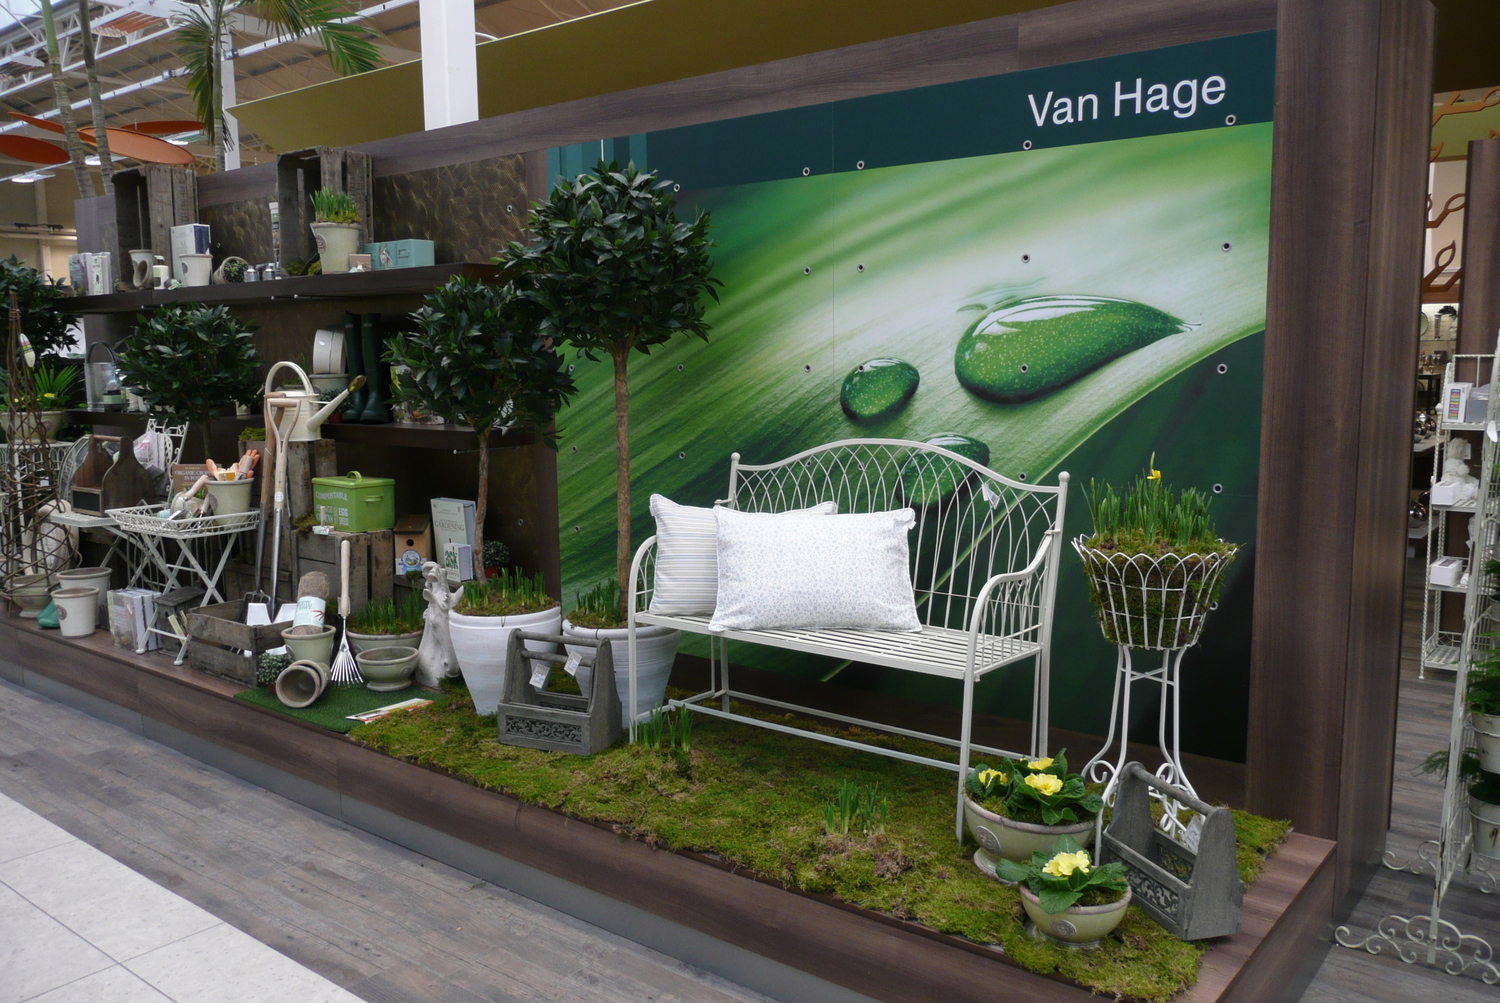 Seductive Van Hage Garden Centre  Peterborough  Alex Urquhart With Great Prev  Next With Delectable Garden Decking Glasgow Also Bq Sale Garden Furniture In Addition Vintage Garden Ideas And Pinterest Small Gardens As Well As Bretby Garden Centre Additionally Homebase Garden Sheds From Auinteriordesigncom With   Great Van Hage Garden Centre  Peterborough  Alex Urquhart With Delectable Prev  Next And Seductive Garden Decking Glasgow Also Bq Sale Garden Furniture In Addition Vintage Garden Ideas From Auinteriordesigncom